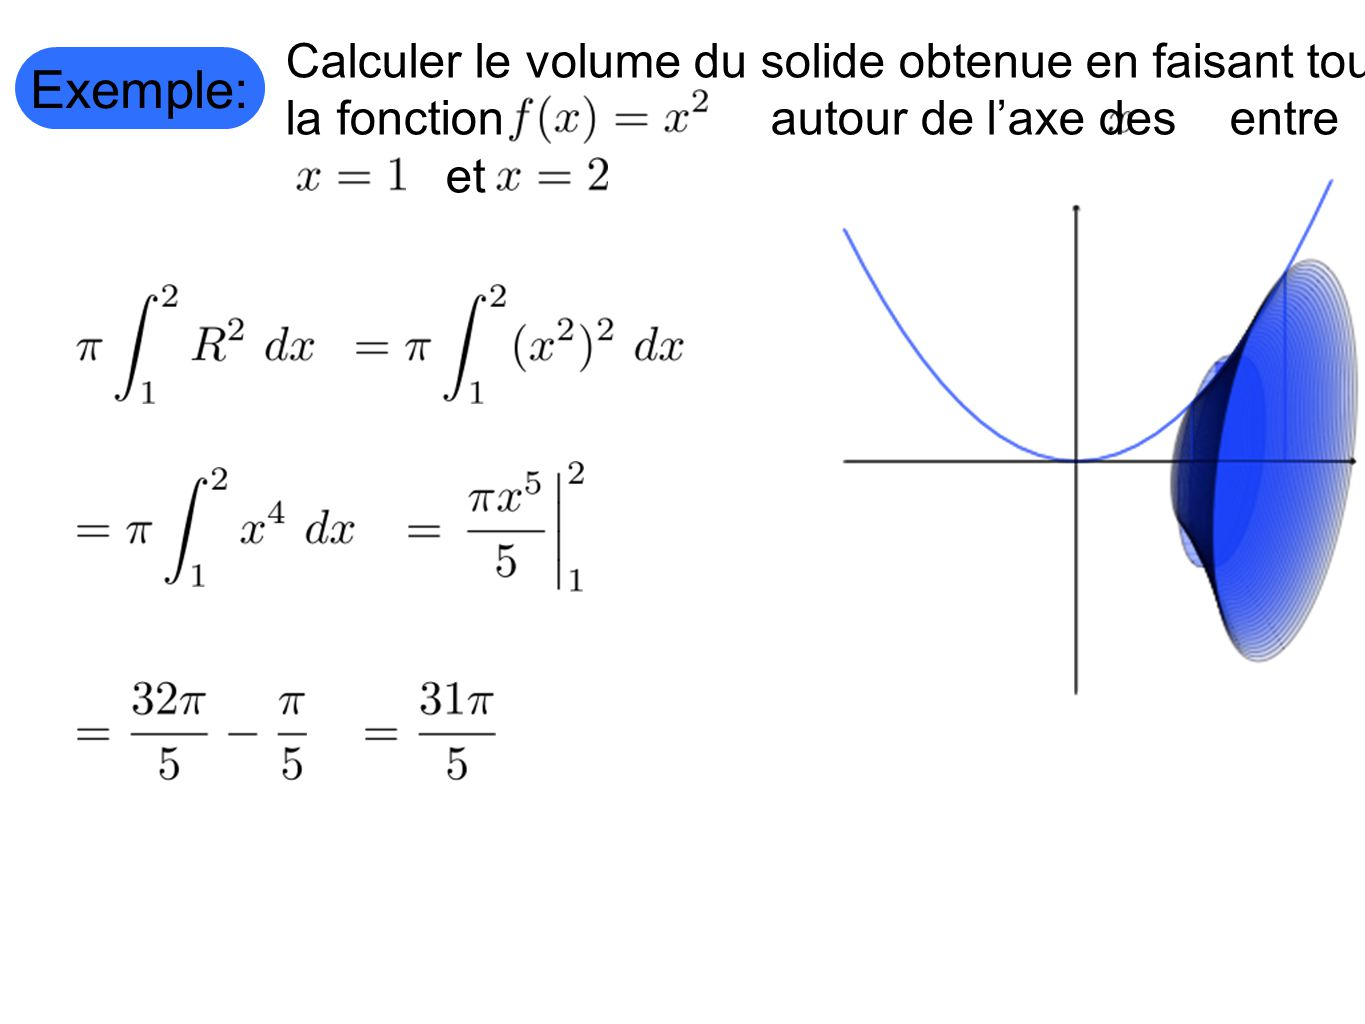 Exemple: Calculer le volume du solide obtenue en faisant tourner